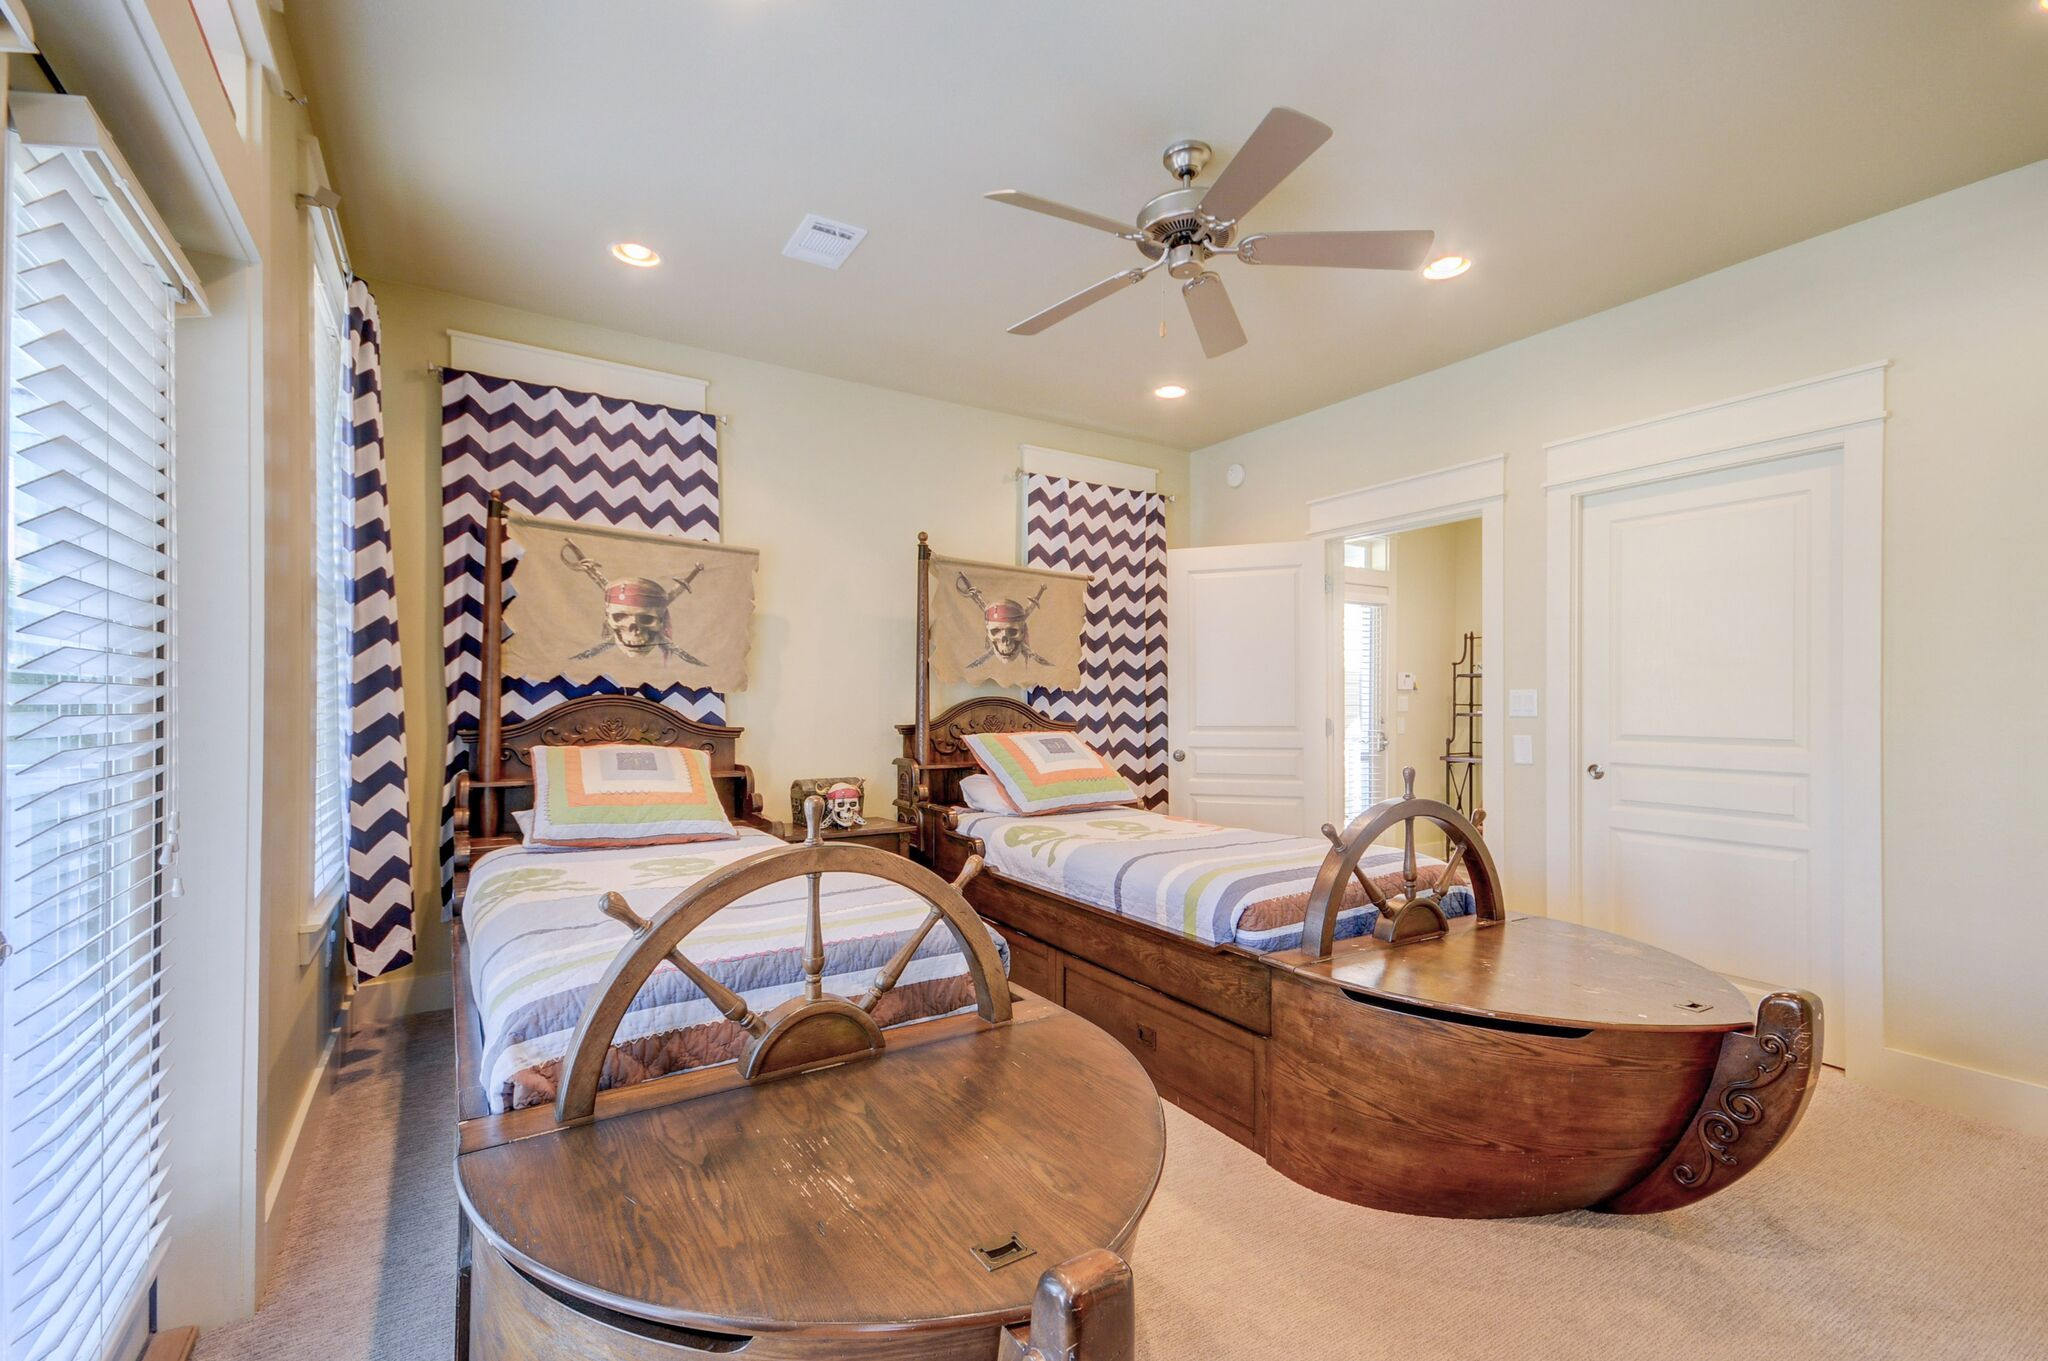 Bedroom #2 is an Adorable Pirate Themed Bedroom with 2 Twin Beds and 1 Trundle Bed on 1st Floor